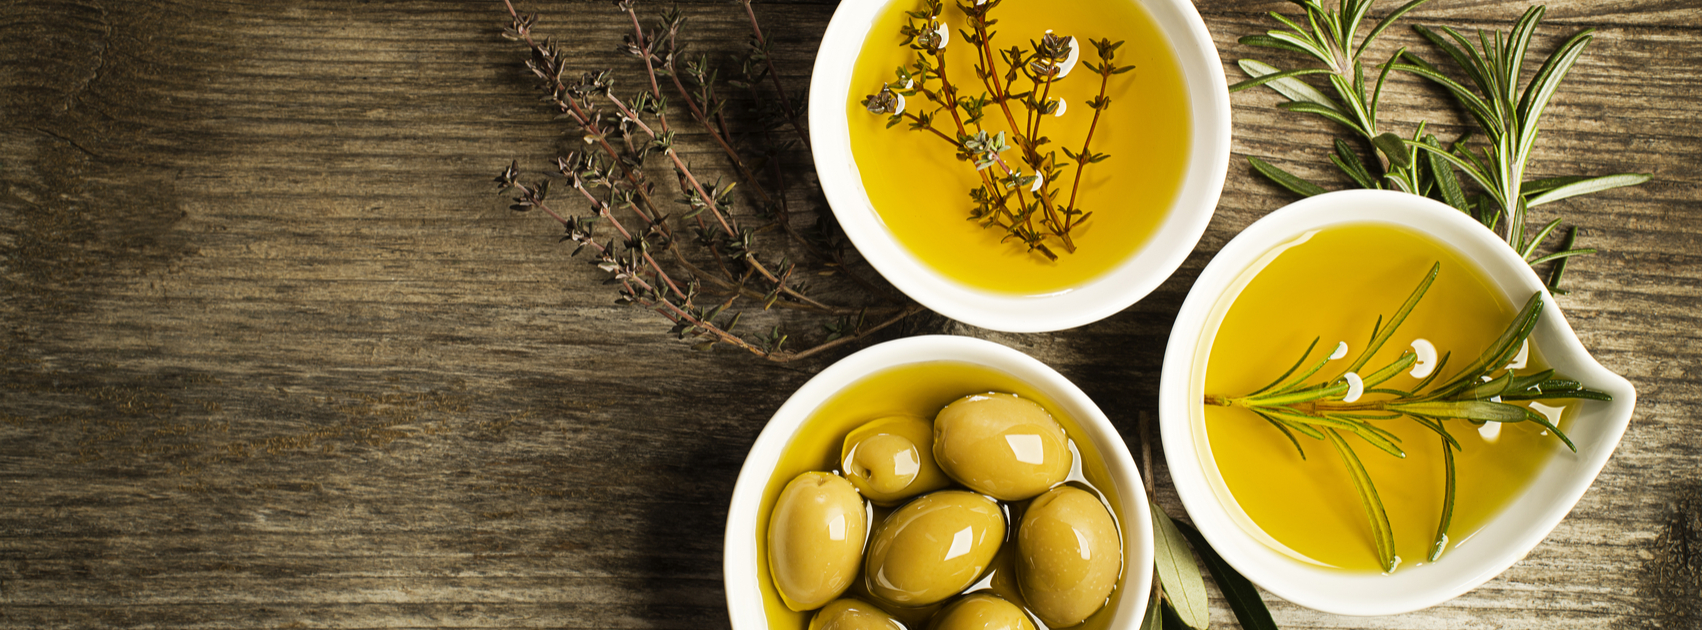 Olive Branches | DIY Ideas - Sponsor an Olive Tree in Israel